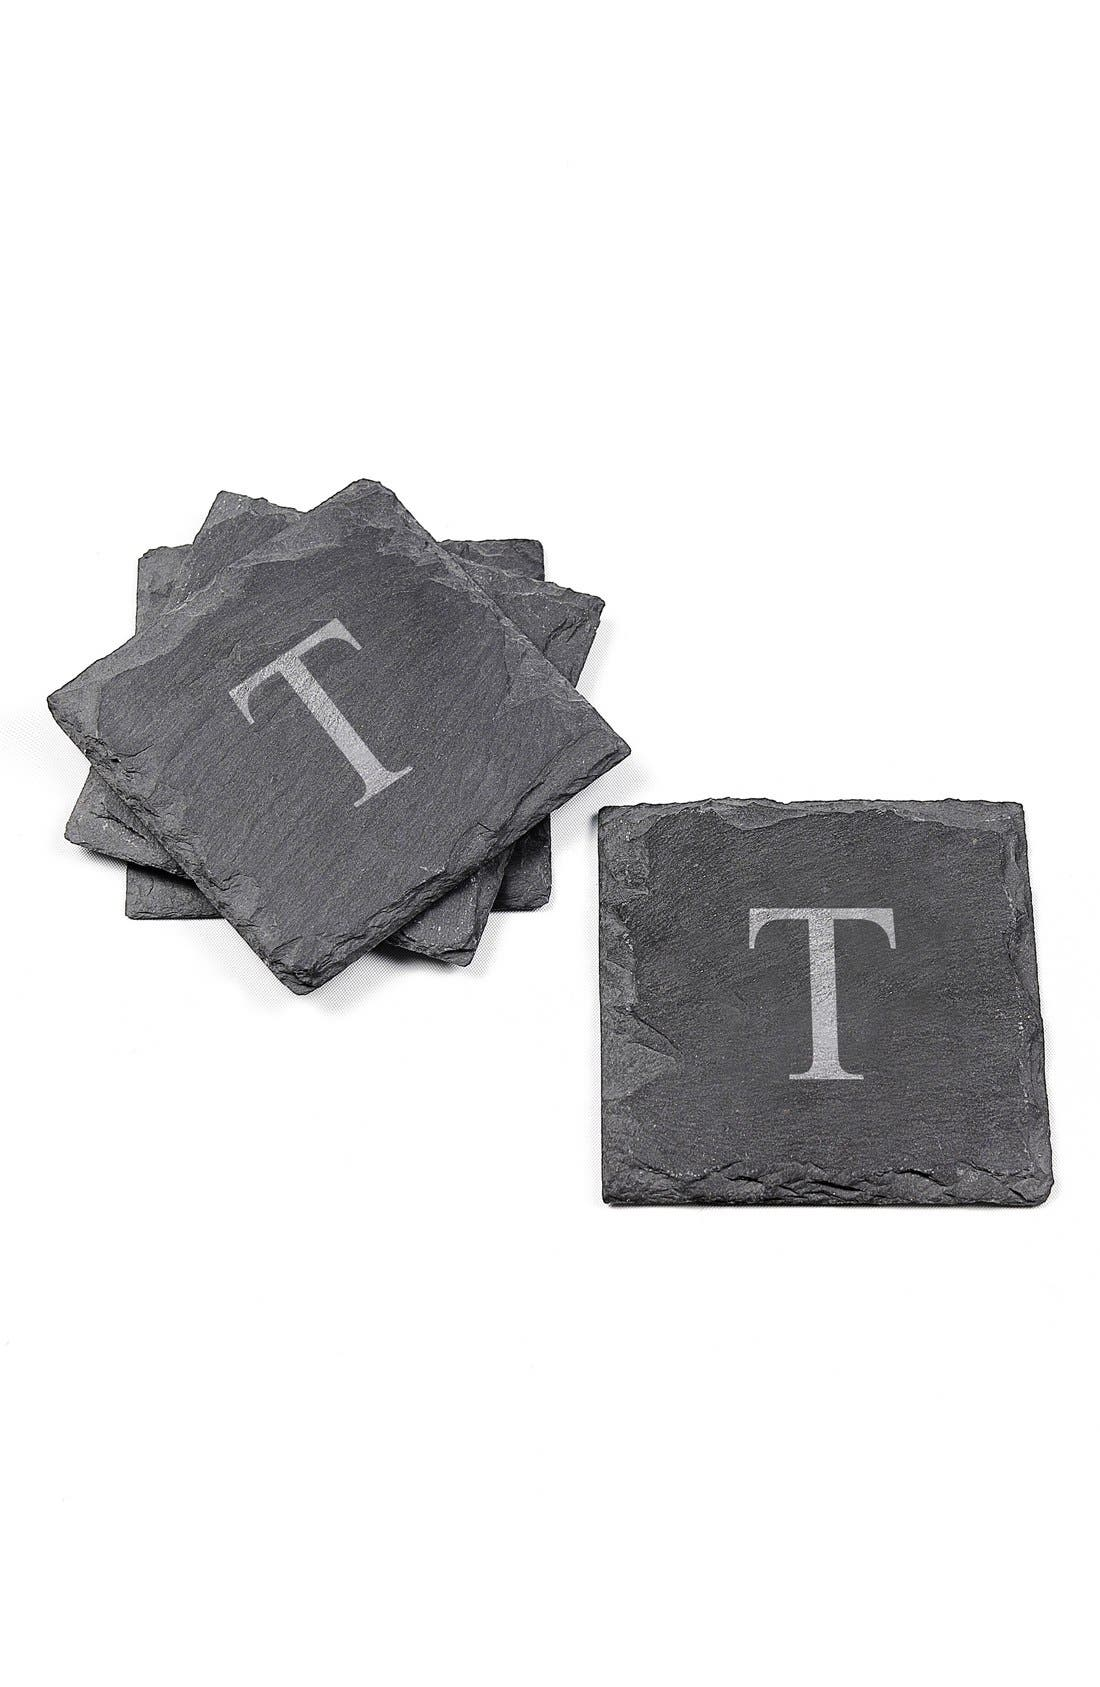 Alternate Image 1 Selected - Cathy's Concepts Monogram Slate Coasters (Set of 4)